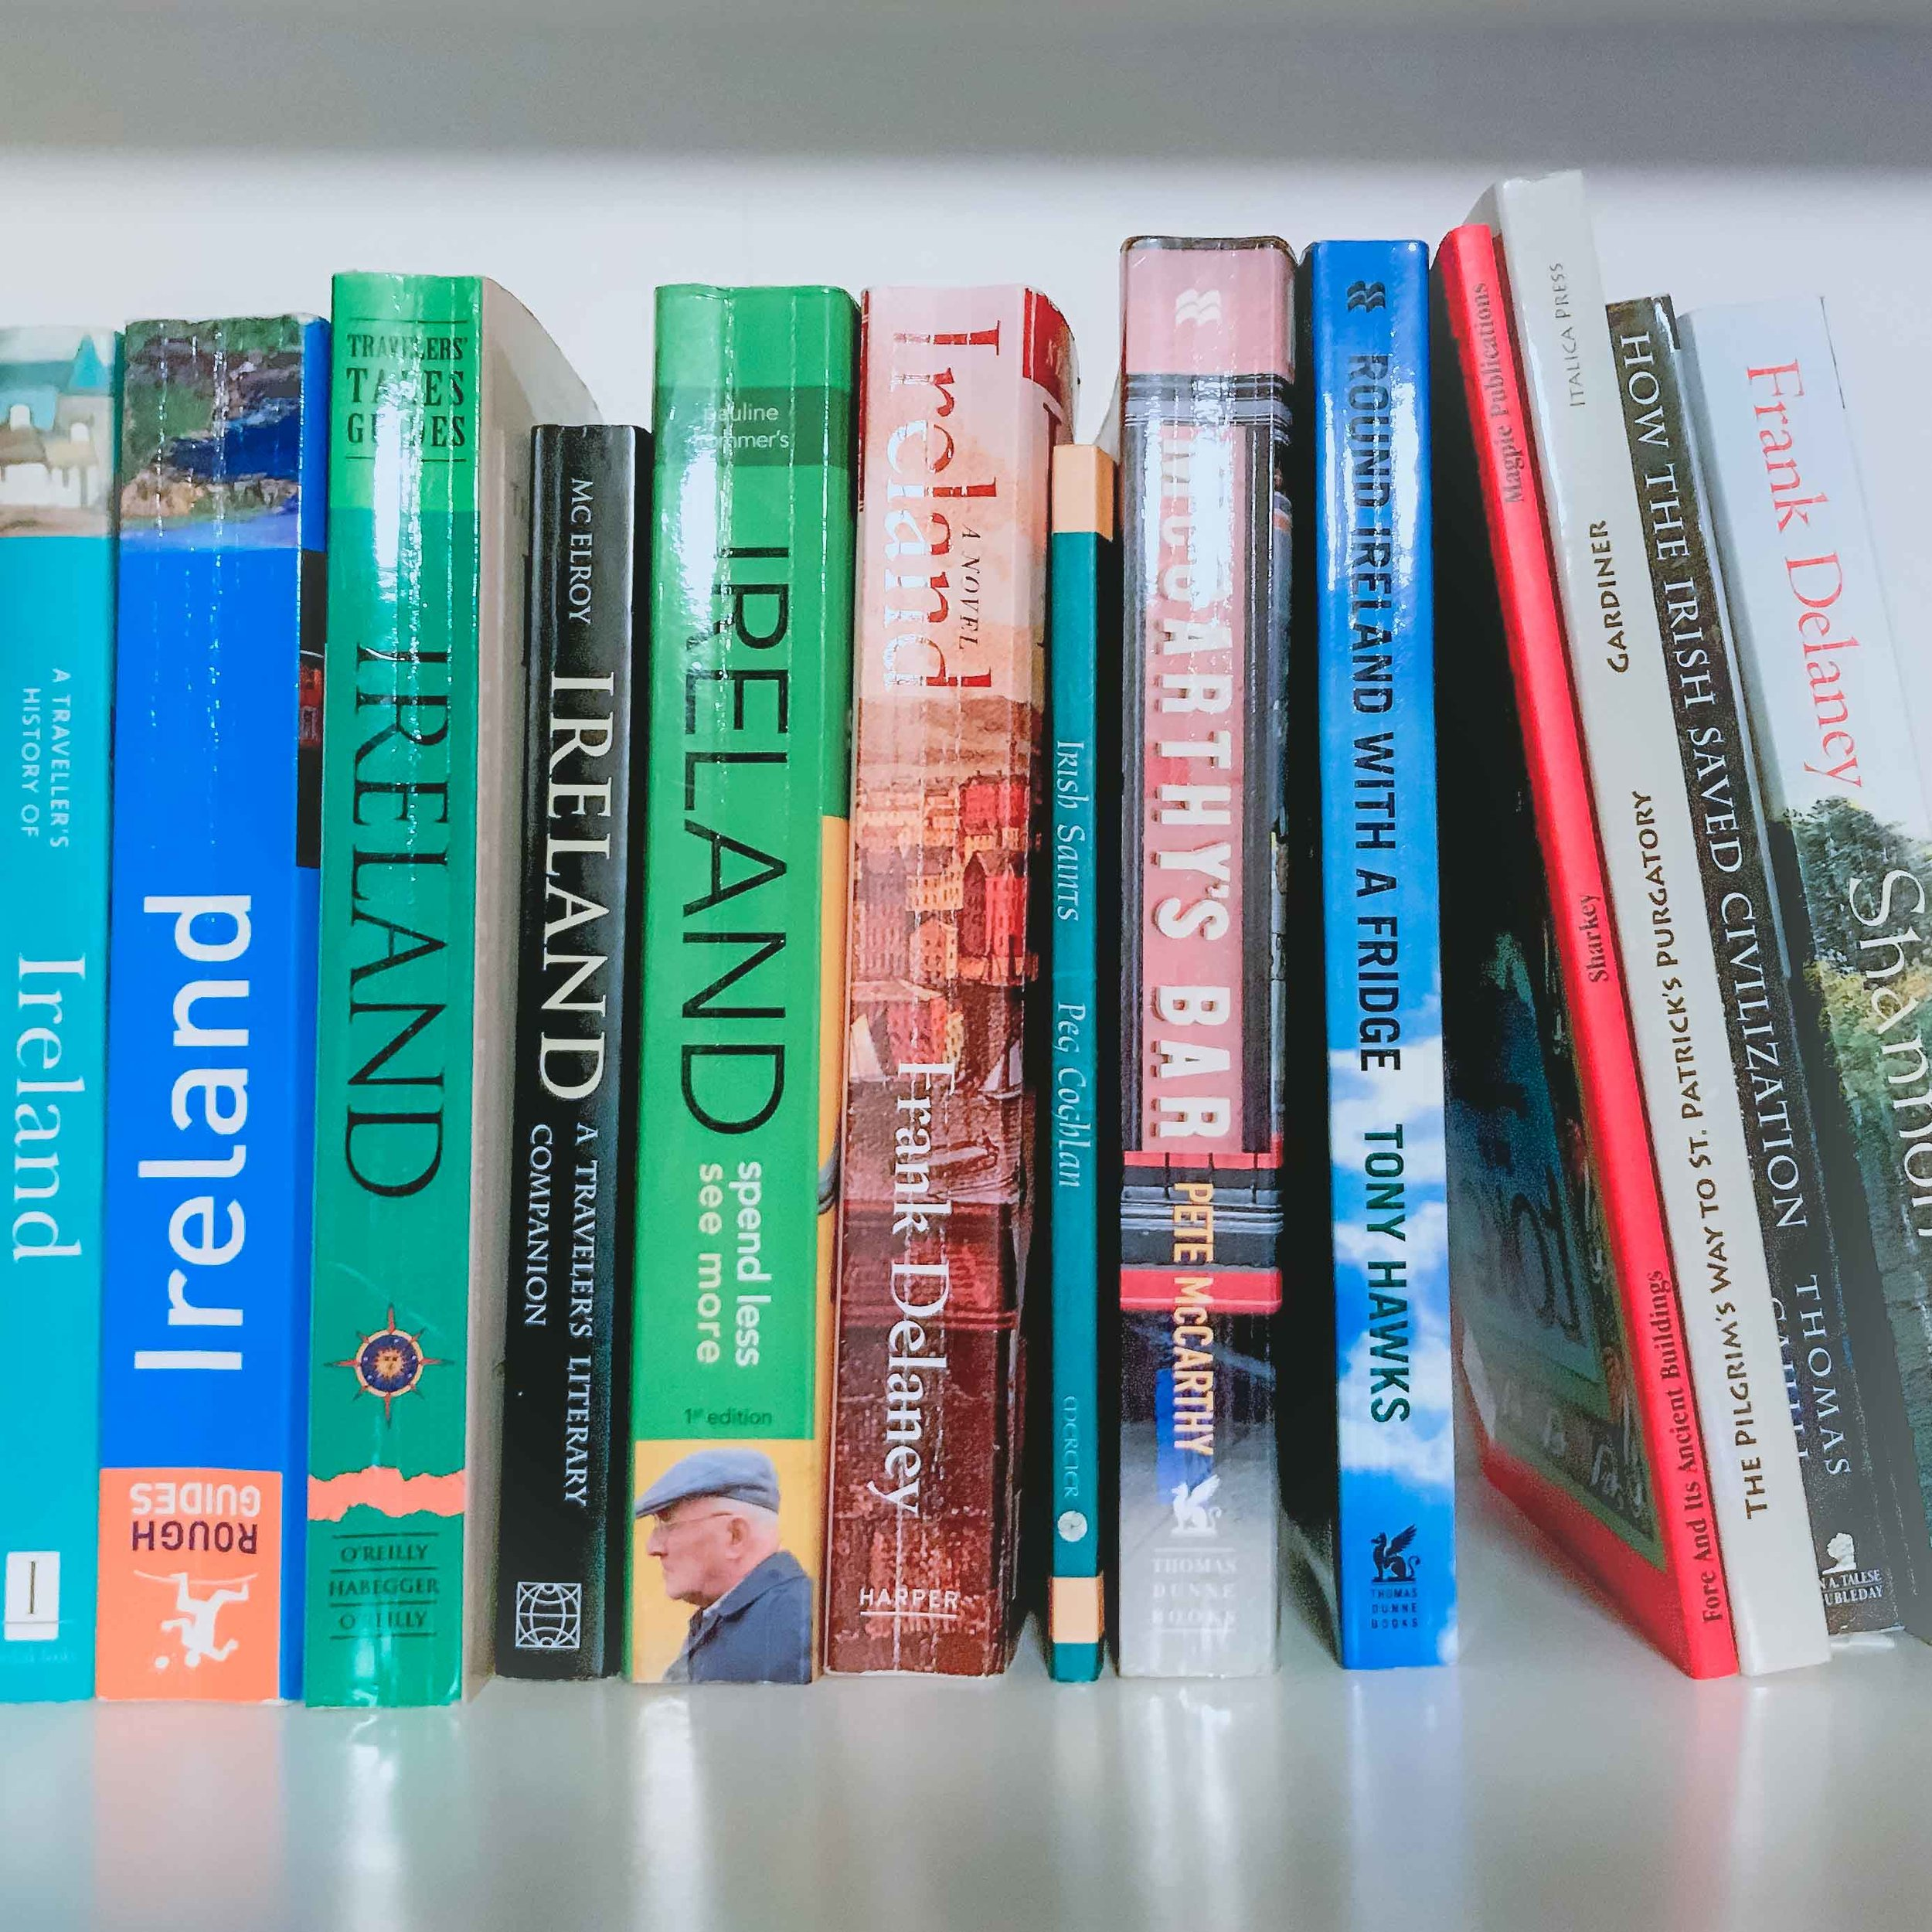 Reading List: Florence - What to read before you travel to Ireland